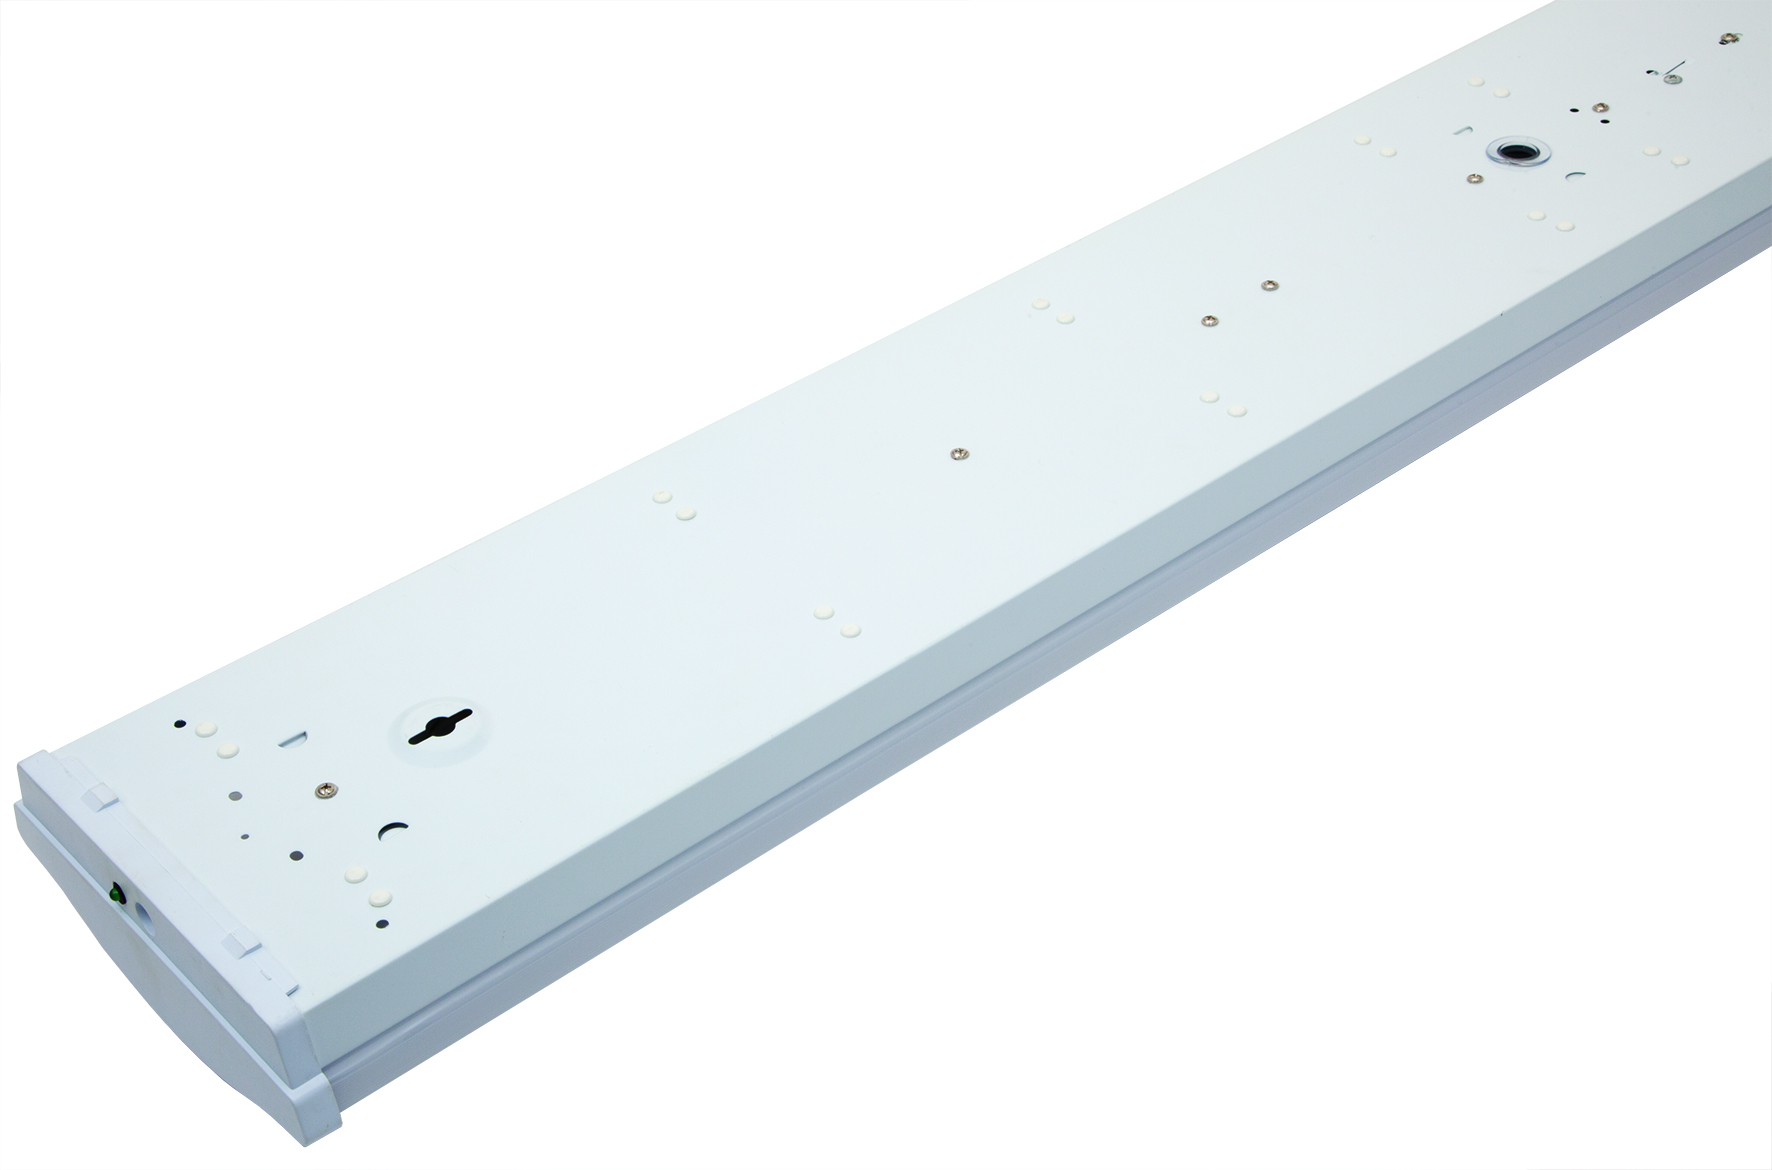 REELTECH curved linear LED strip light rear dali dimmable emergency 0 10v wireless lighting control